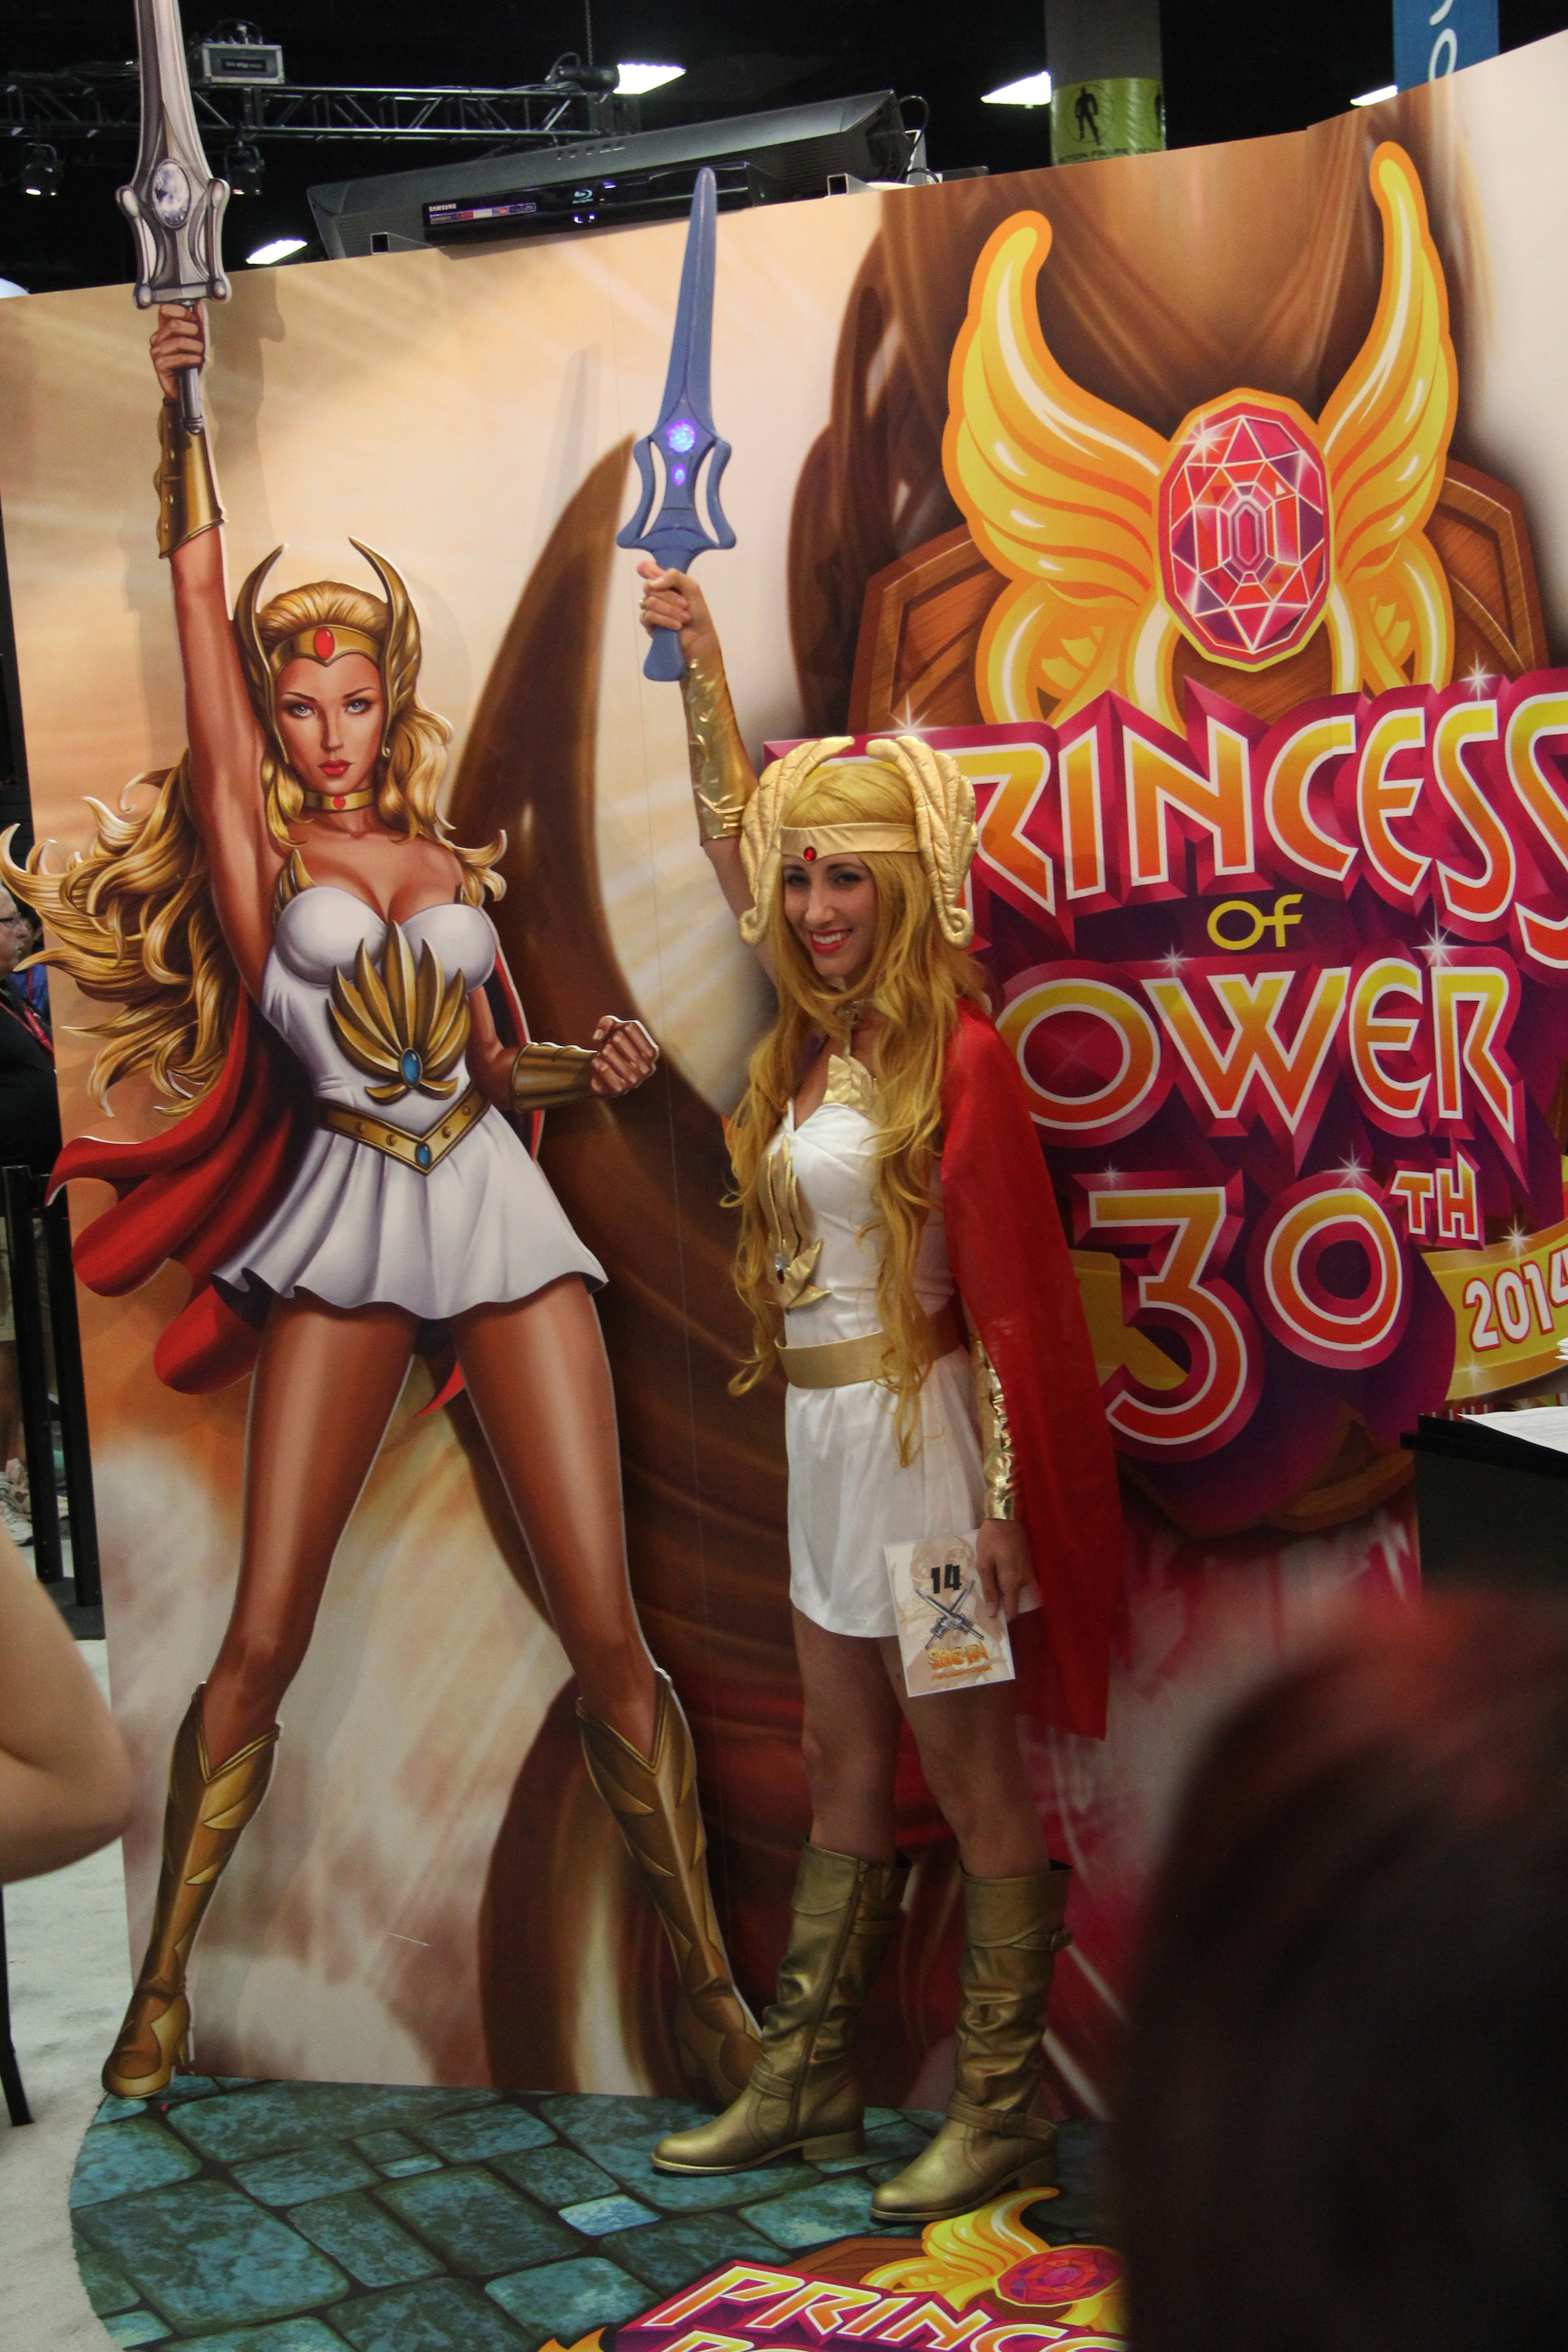 Comic-Con 2014: Cosplay - Princess of Power